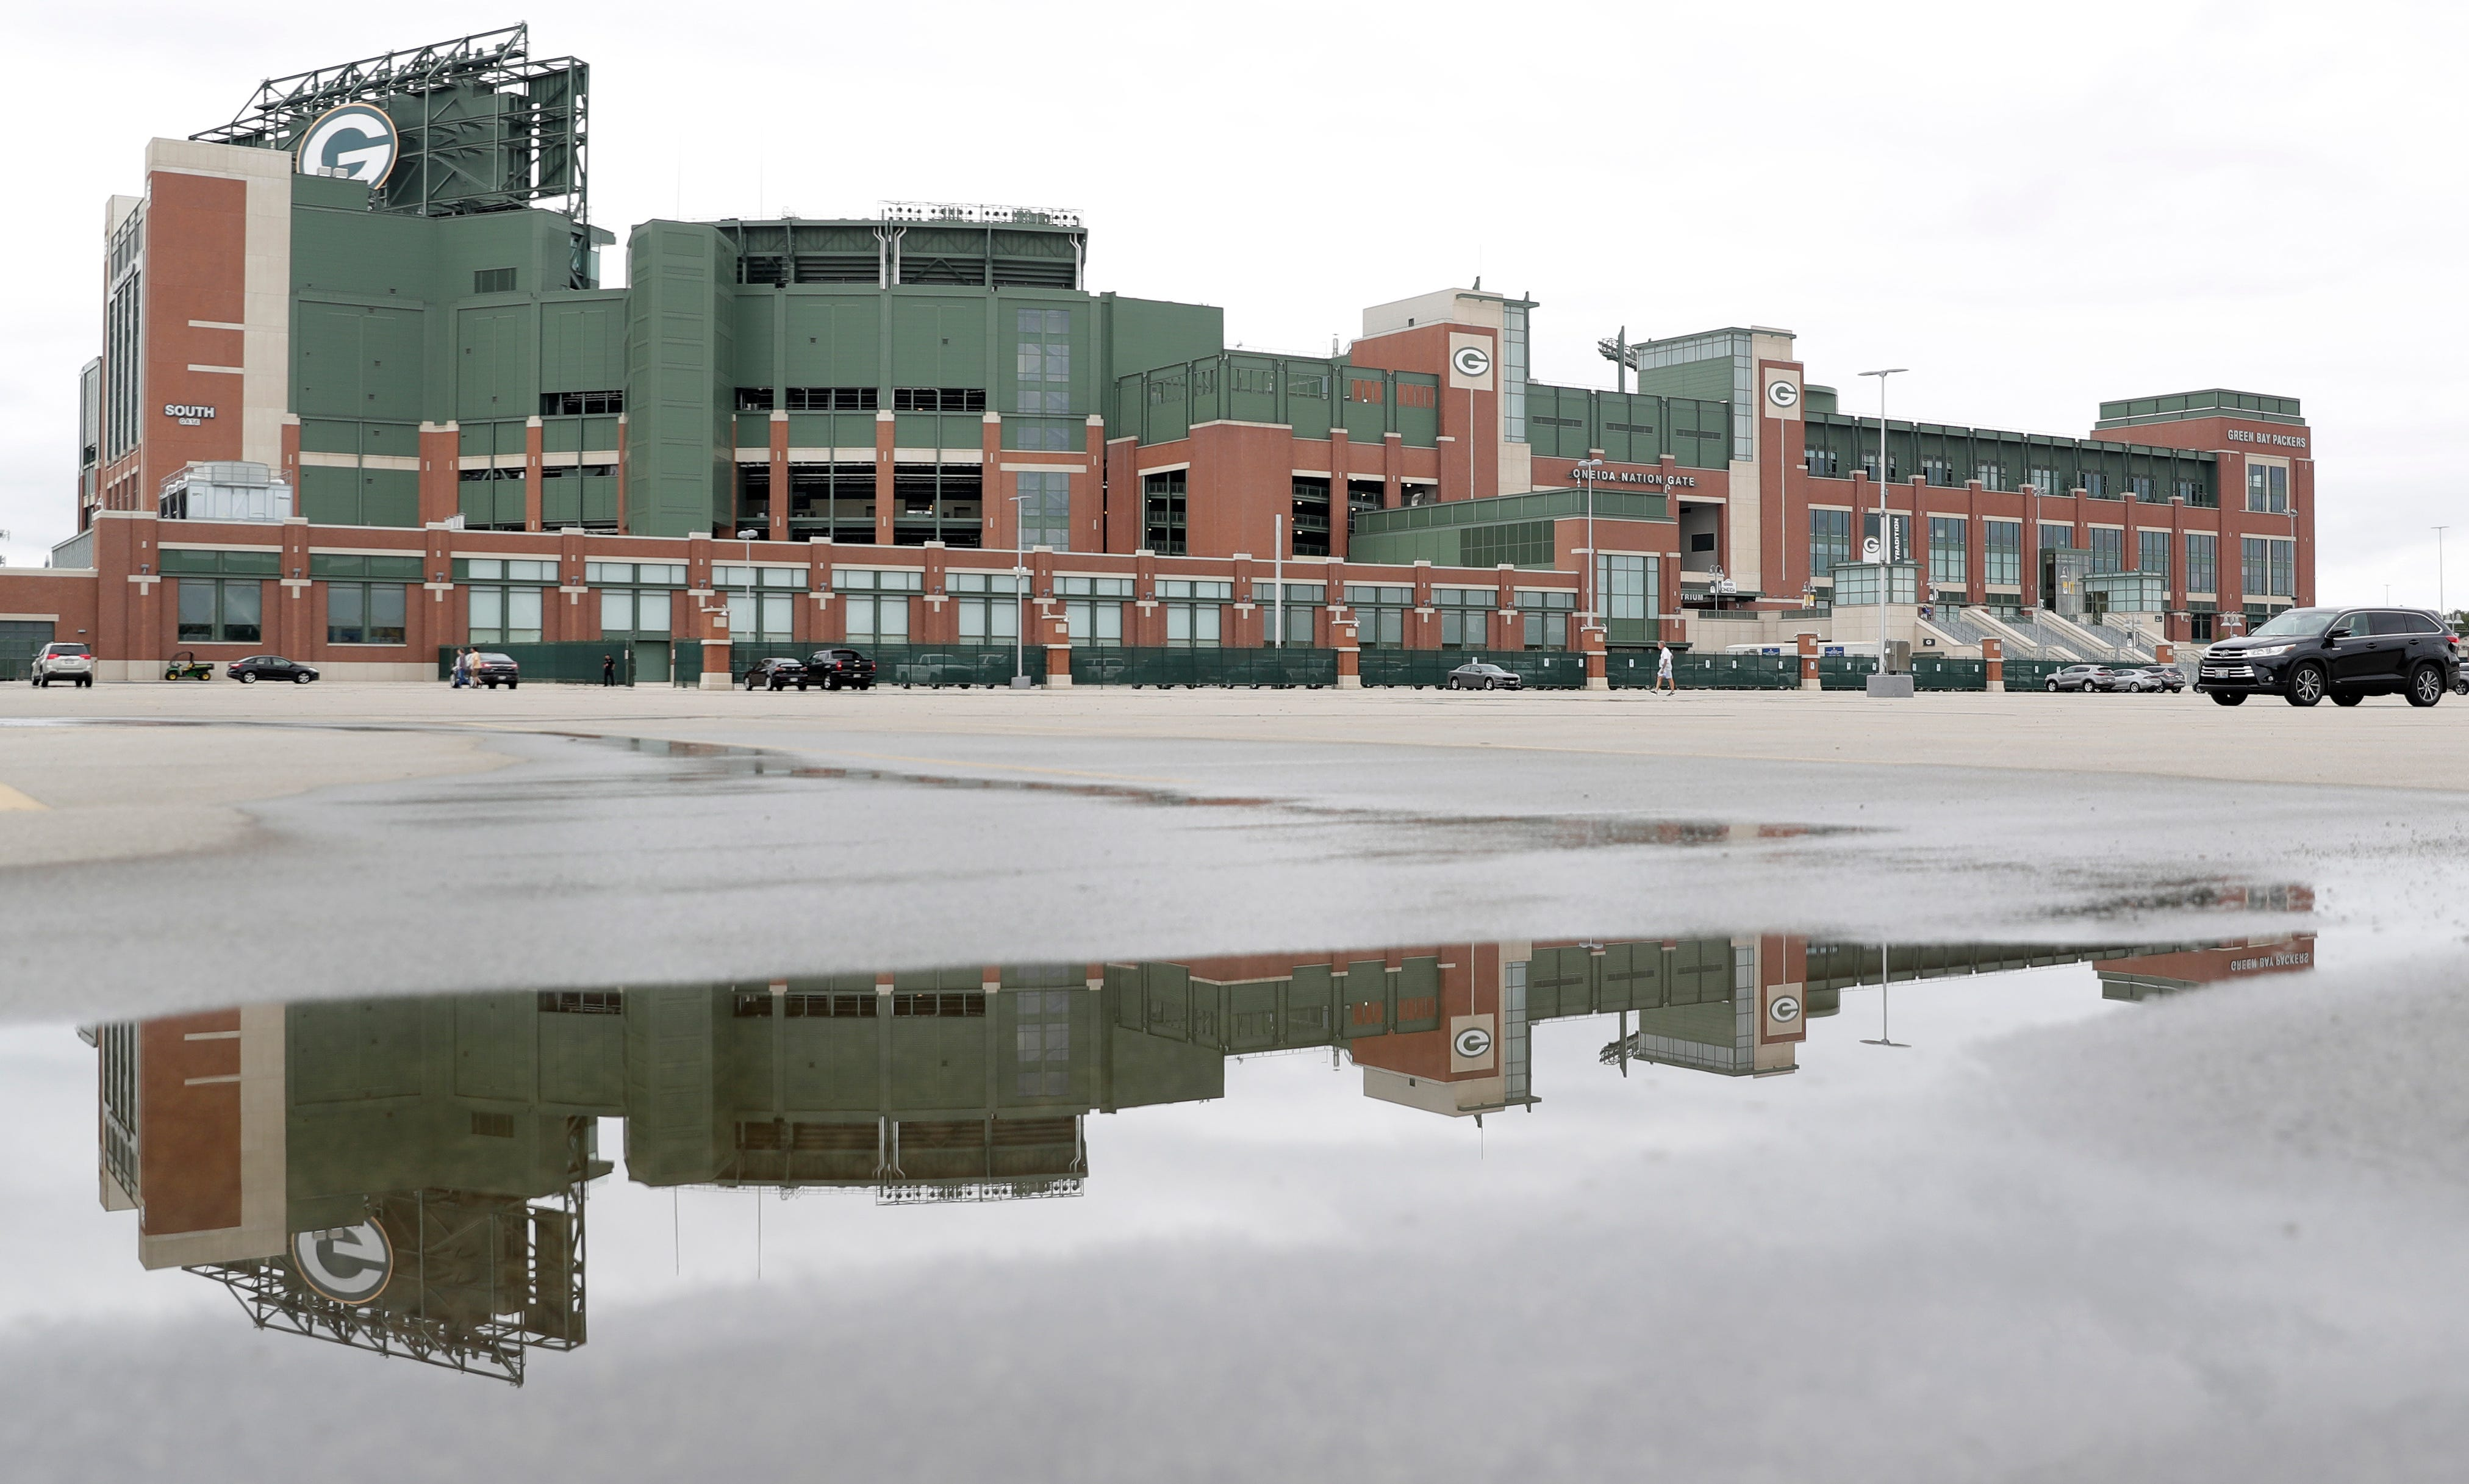 The parking lot at Lambeau Field sits mostly empty on Aug. 15, 2020, in Green Bay, Wis. The Green Bay Packers began their first practice of training camp at Ray Nitschke Field, but with no public viewing due to the coronavirus pandemic, only a few fans visited the area.